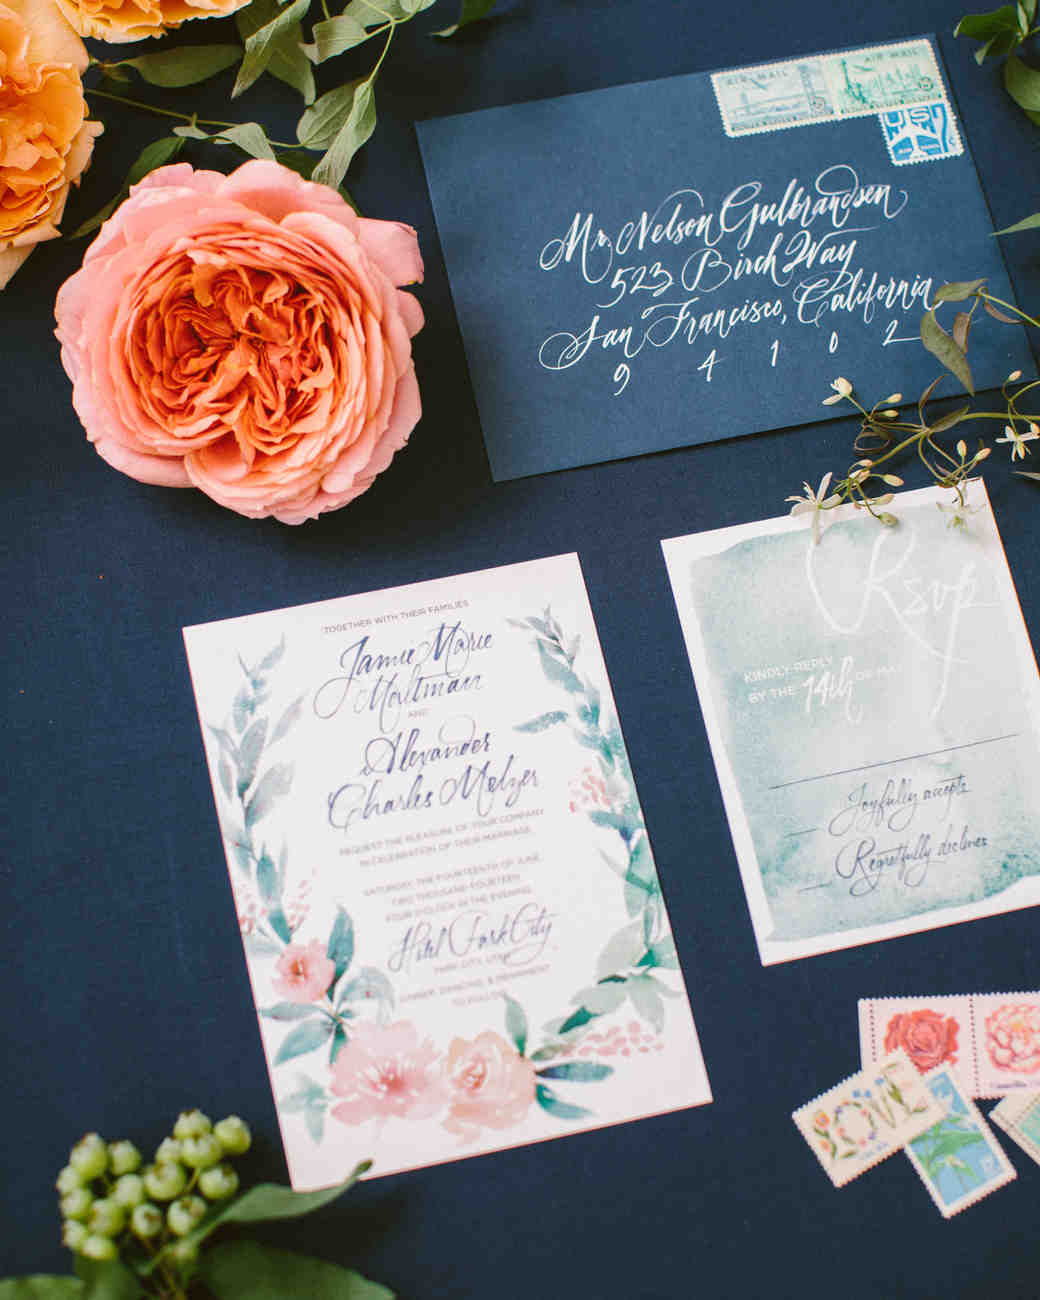 When Do You Send Invitations For Wedding: 10 Things You Should Know Before Mailing Your Wedding